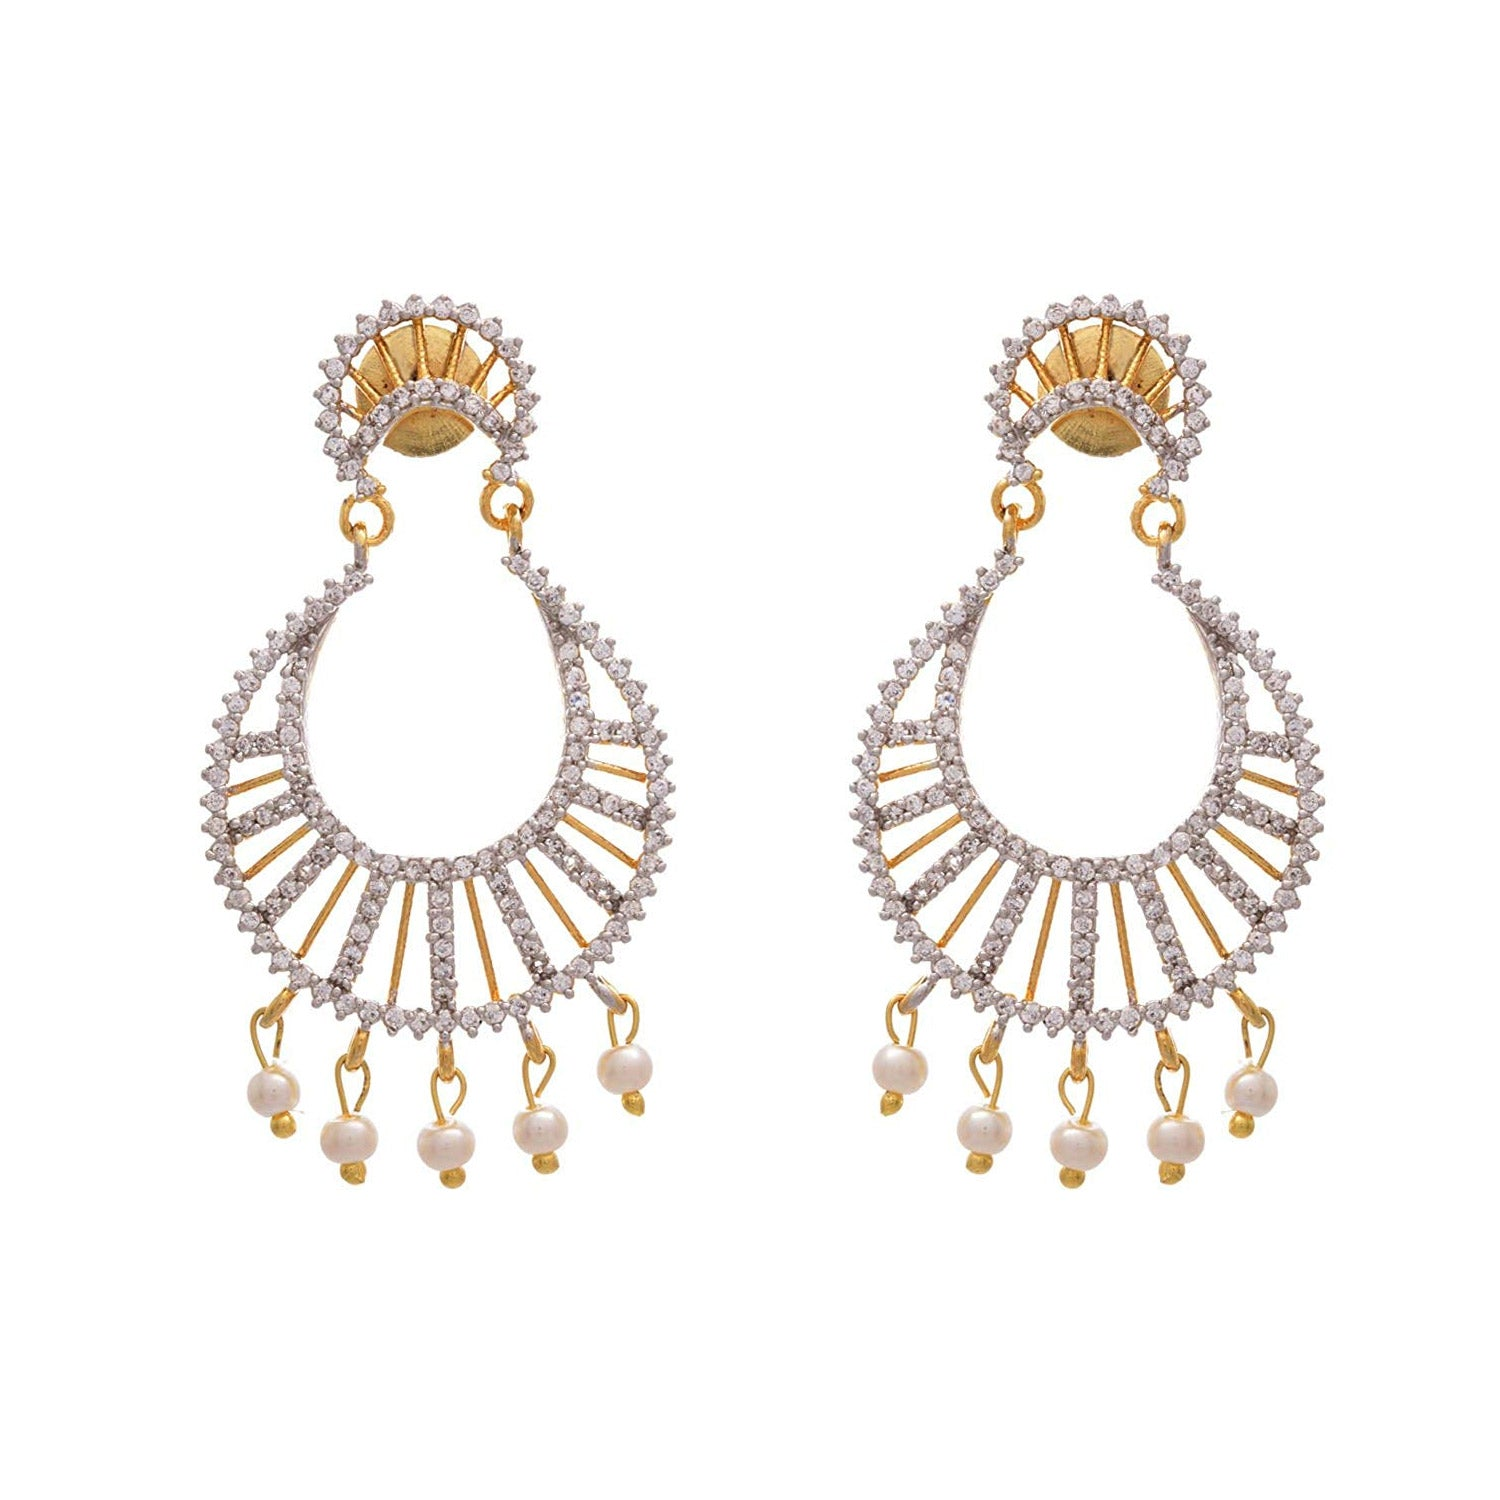 JFL - Traditional Ethnic Fusion Cz American Diamond One Gram Gold Plated Chand Bali Earrings with Pearls for Girls & Women